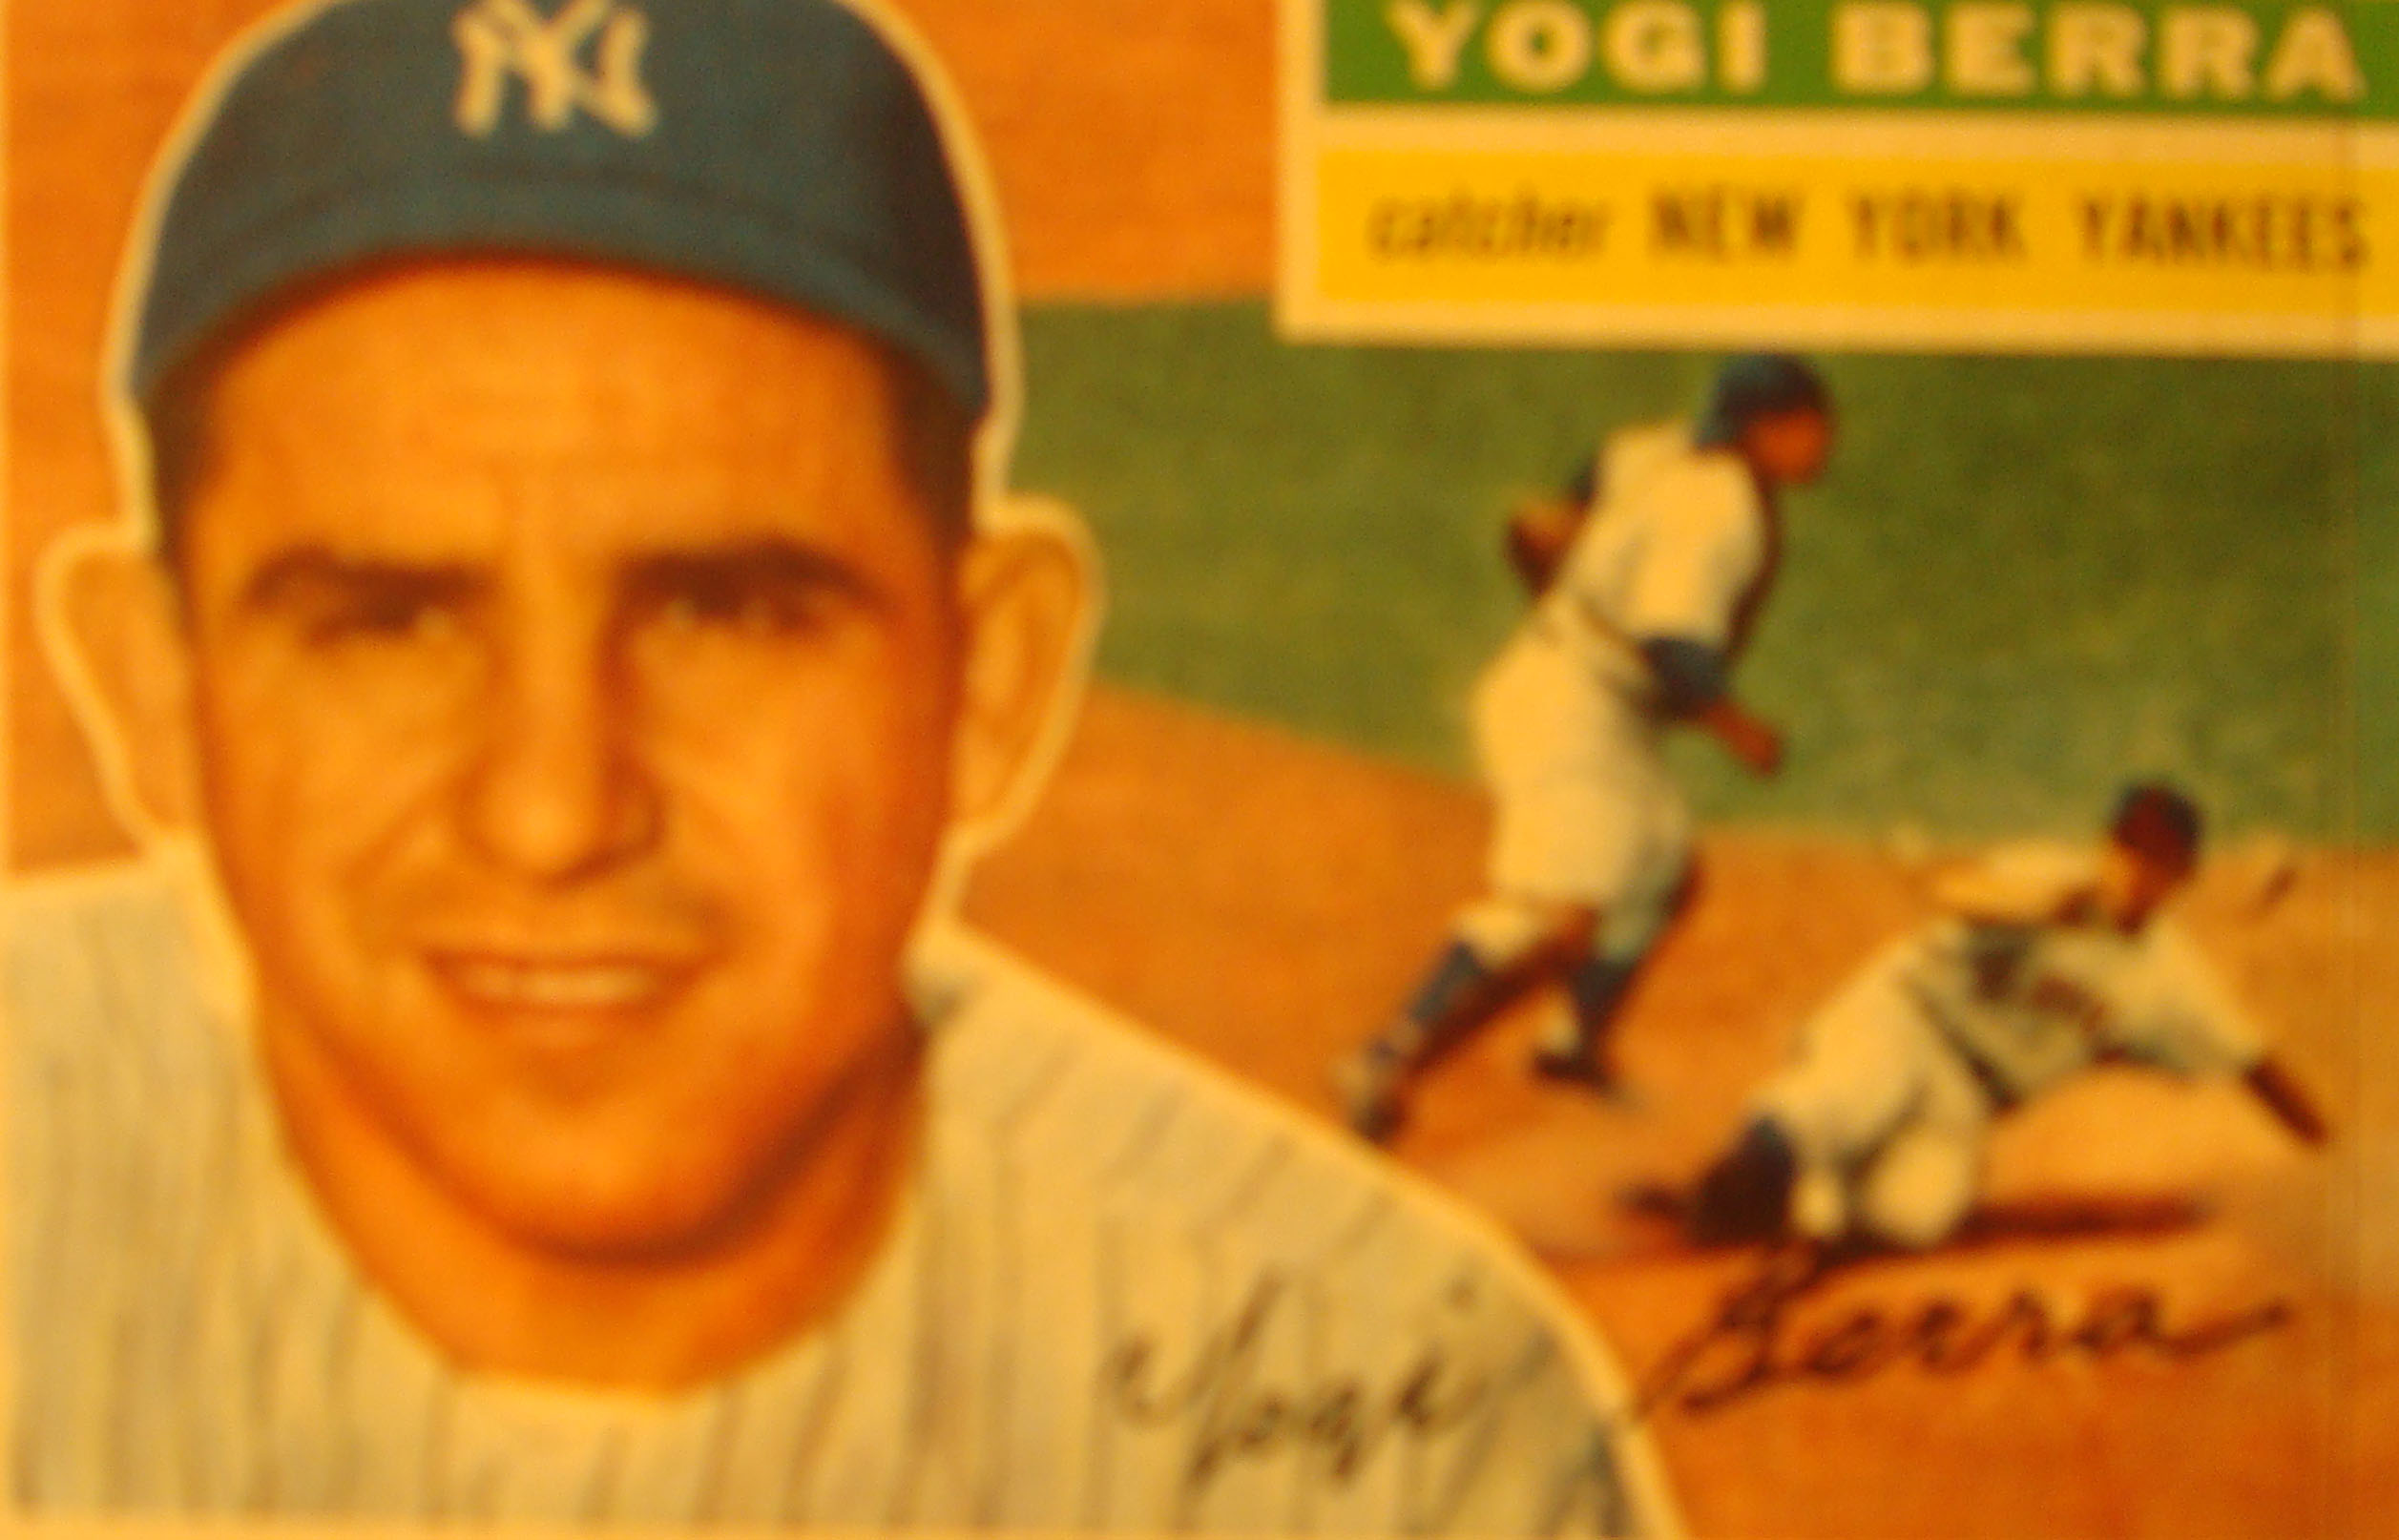 I Never Said Most Of The Things I Said My Tribute To Yogi Berra